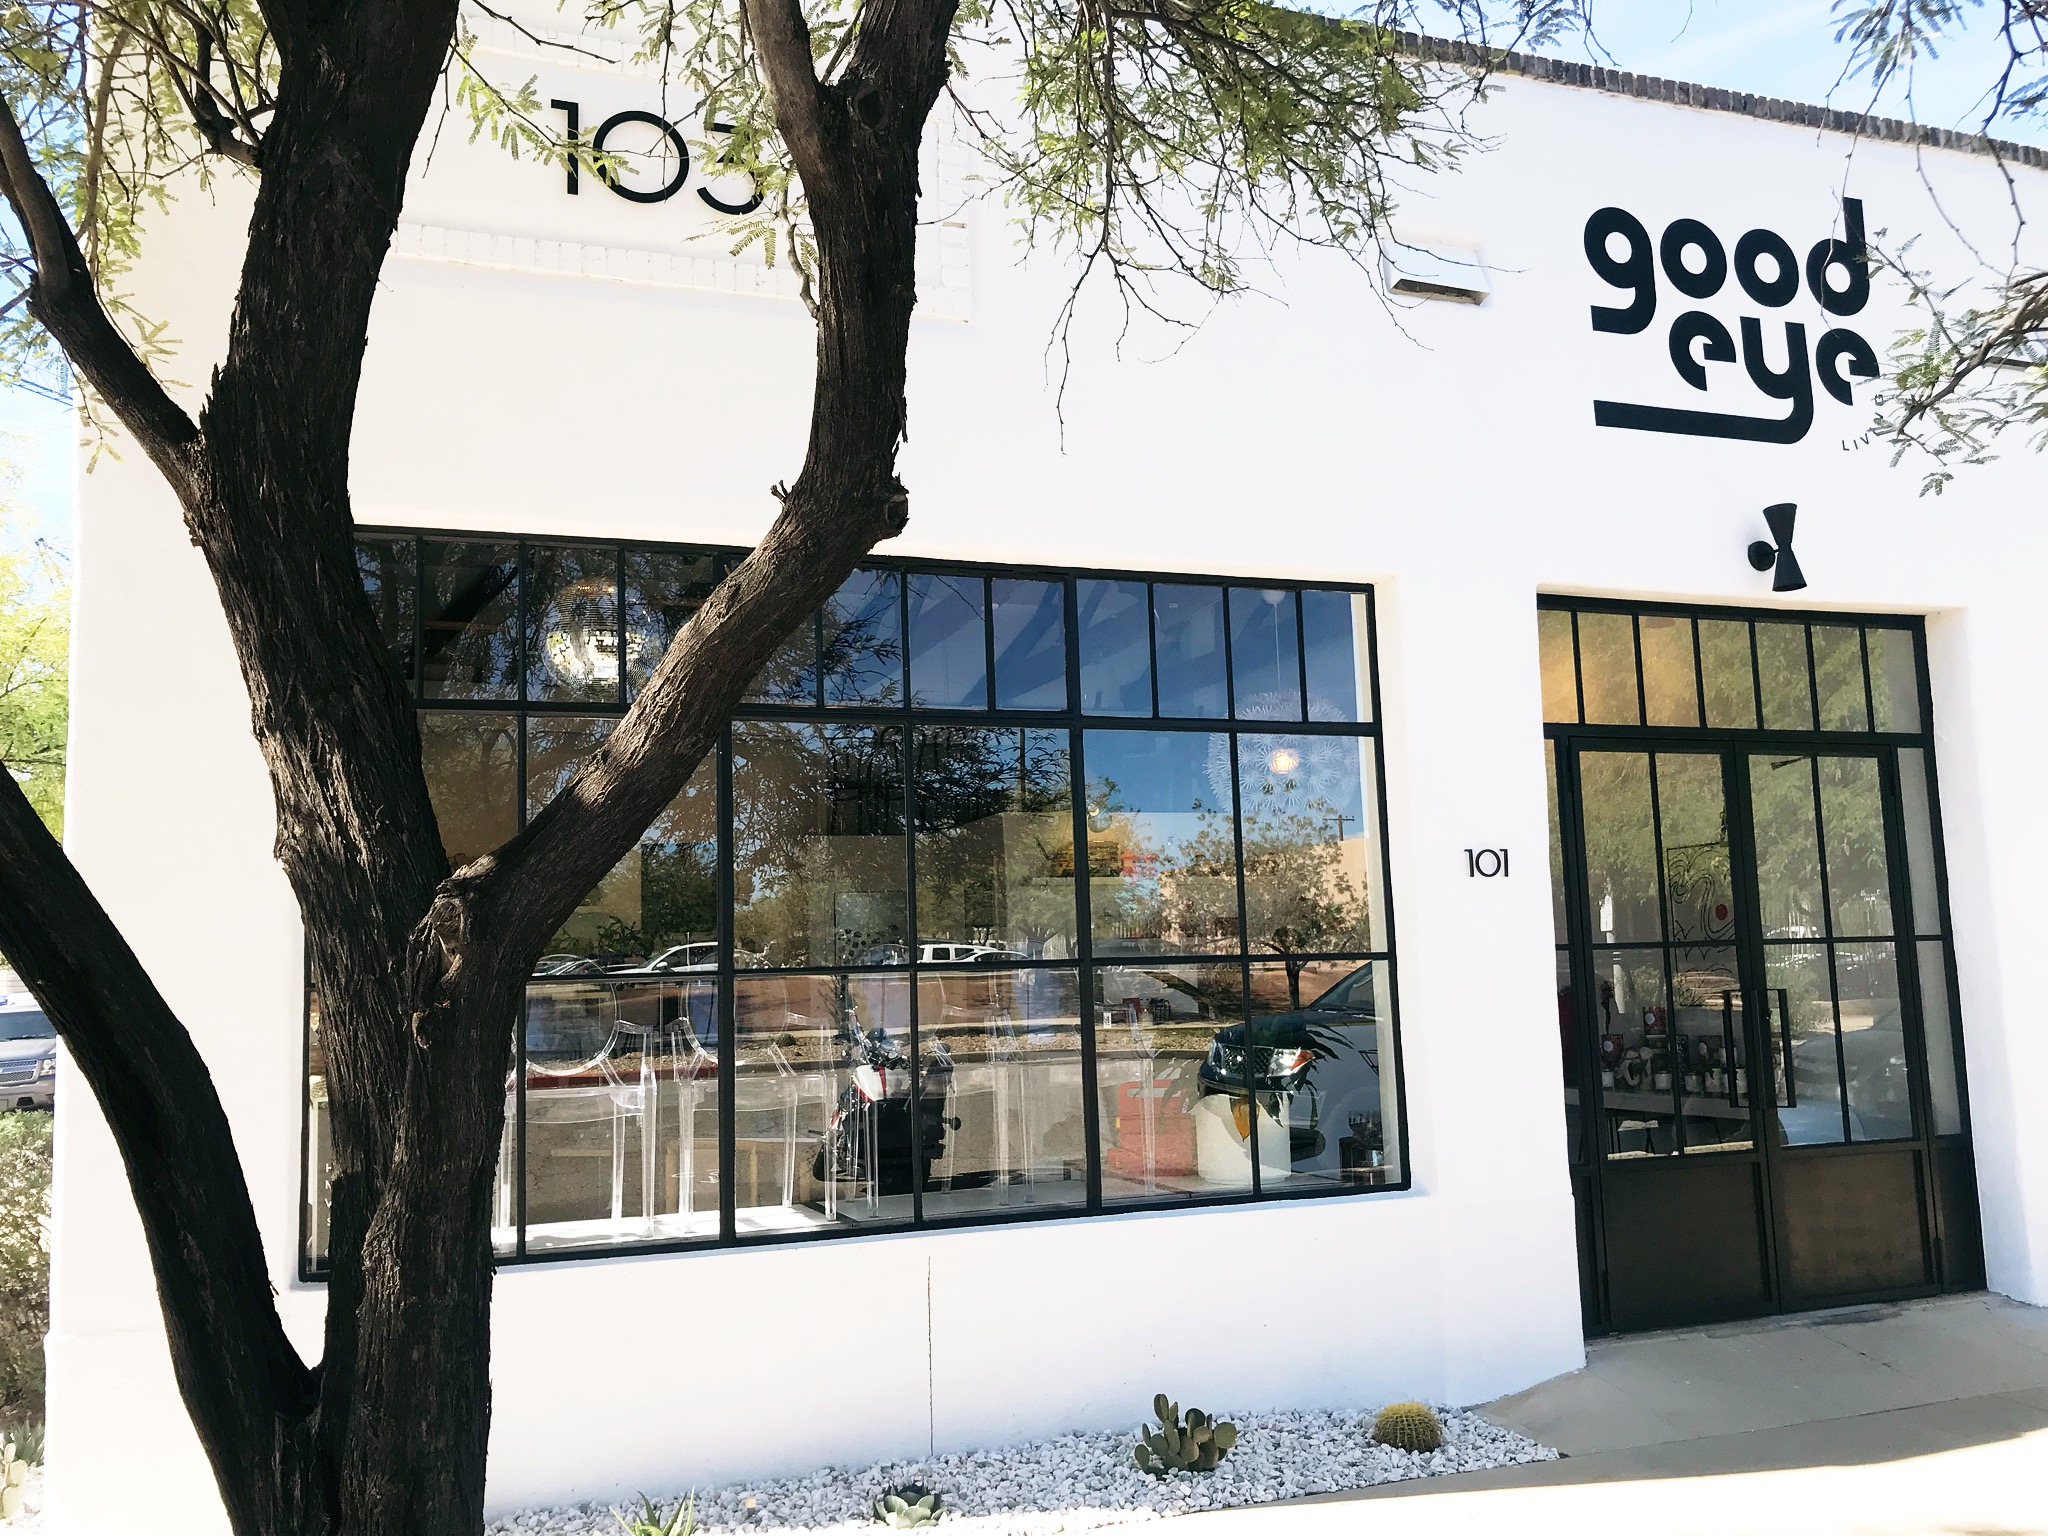 visit our shop wednesday - saturday 11am-6pm - 103 N Park Ave Tucson, AZ 85719